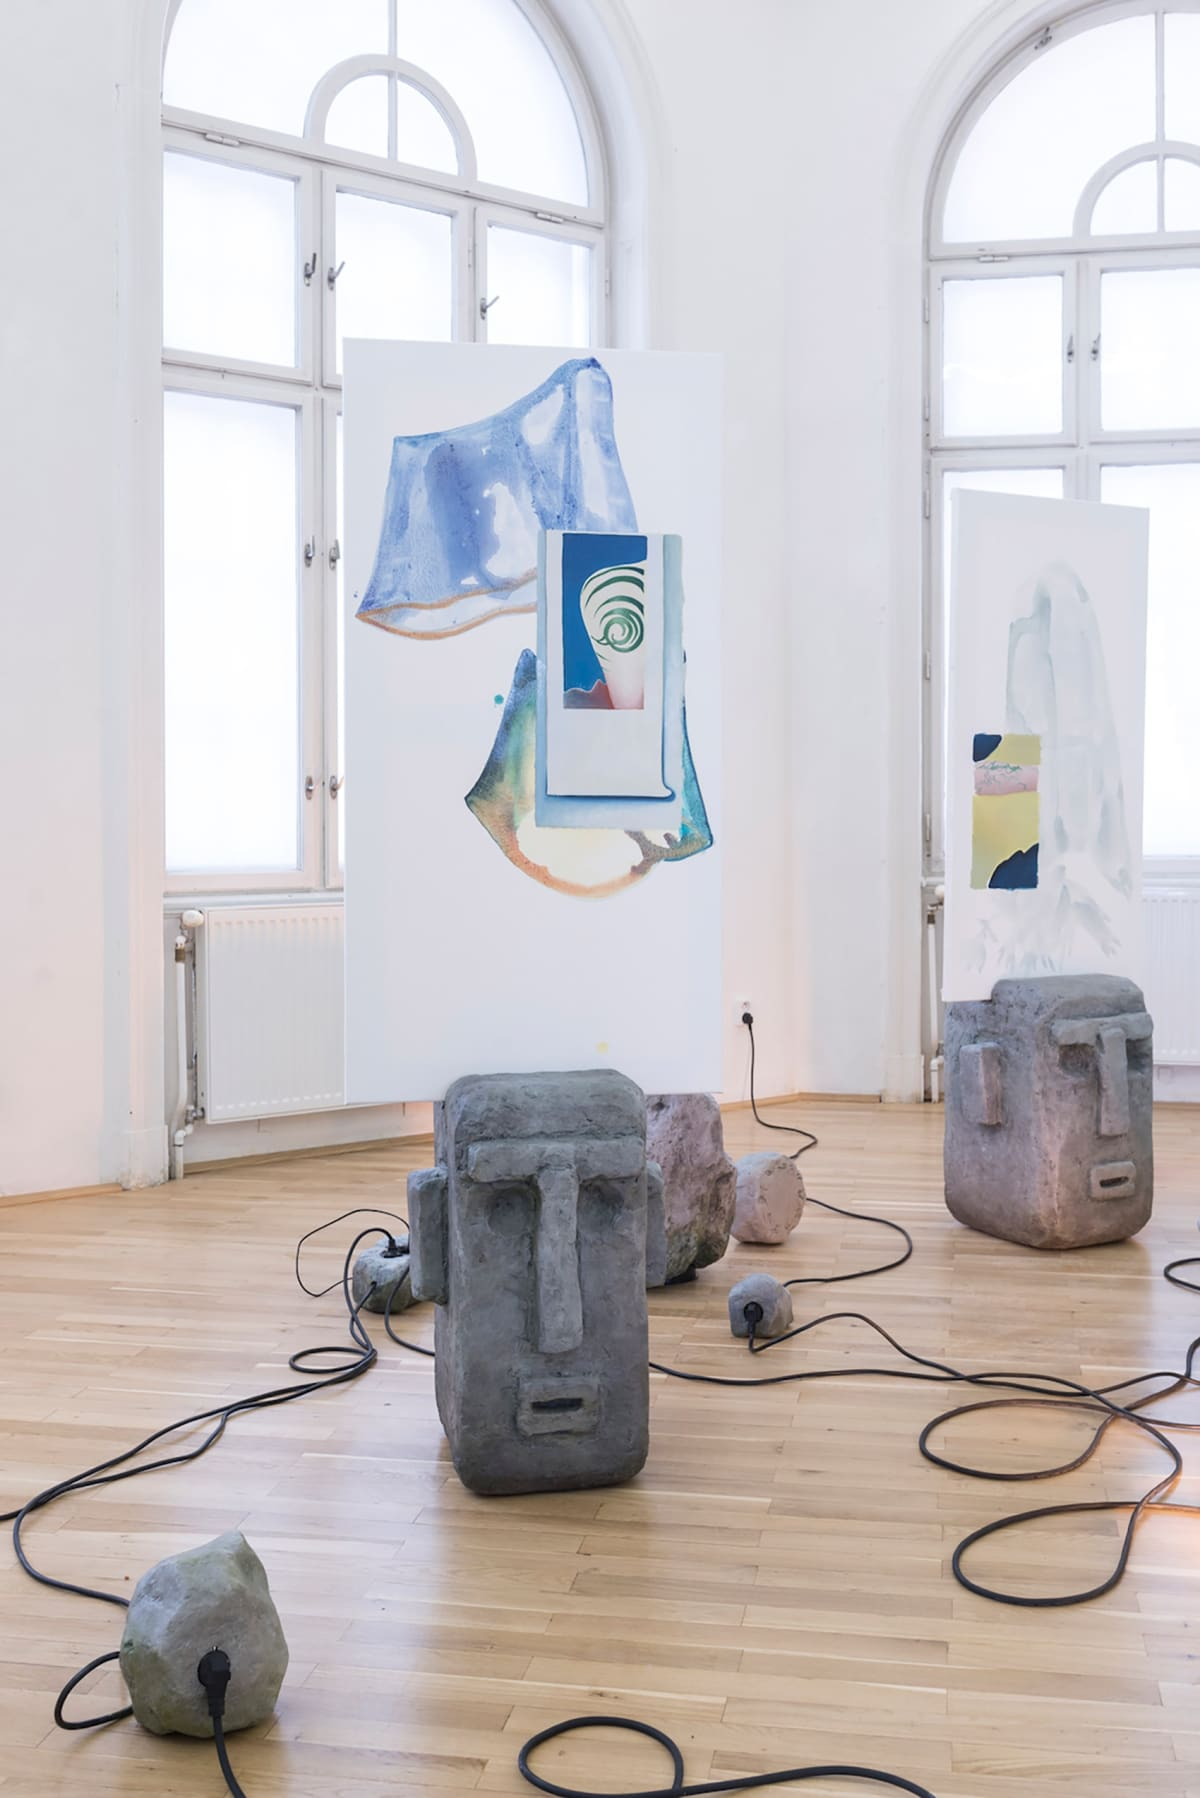 Image shows a gallery room with installations on the floor, cables, paintings on material hanging from the ceiling